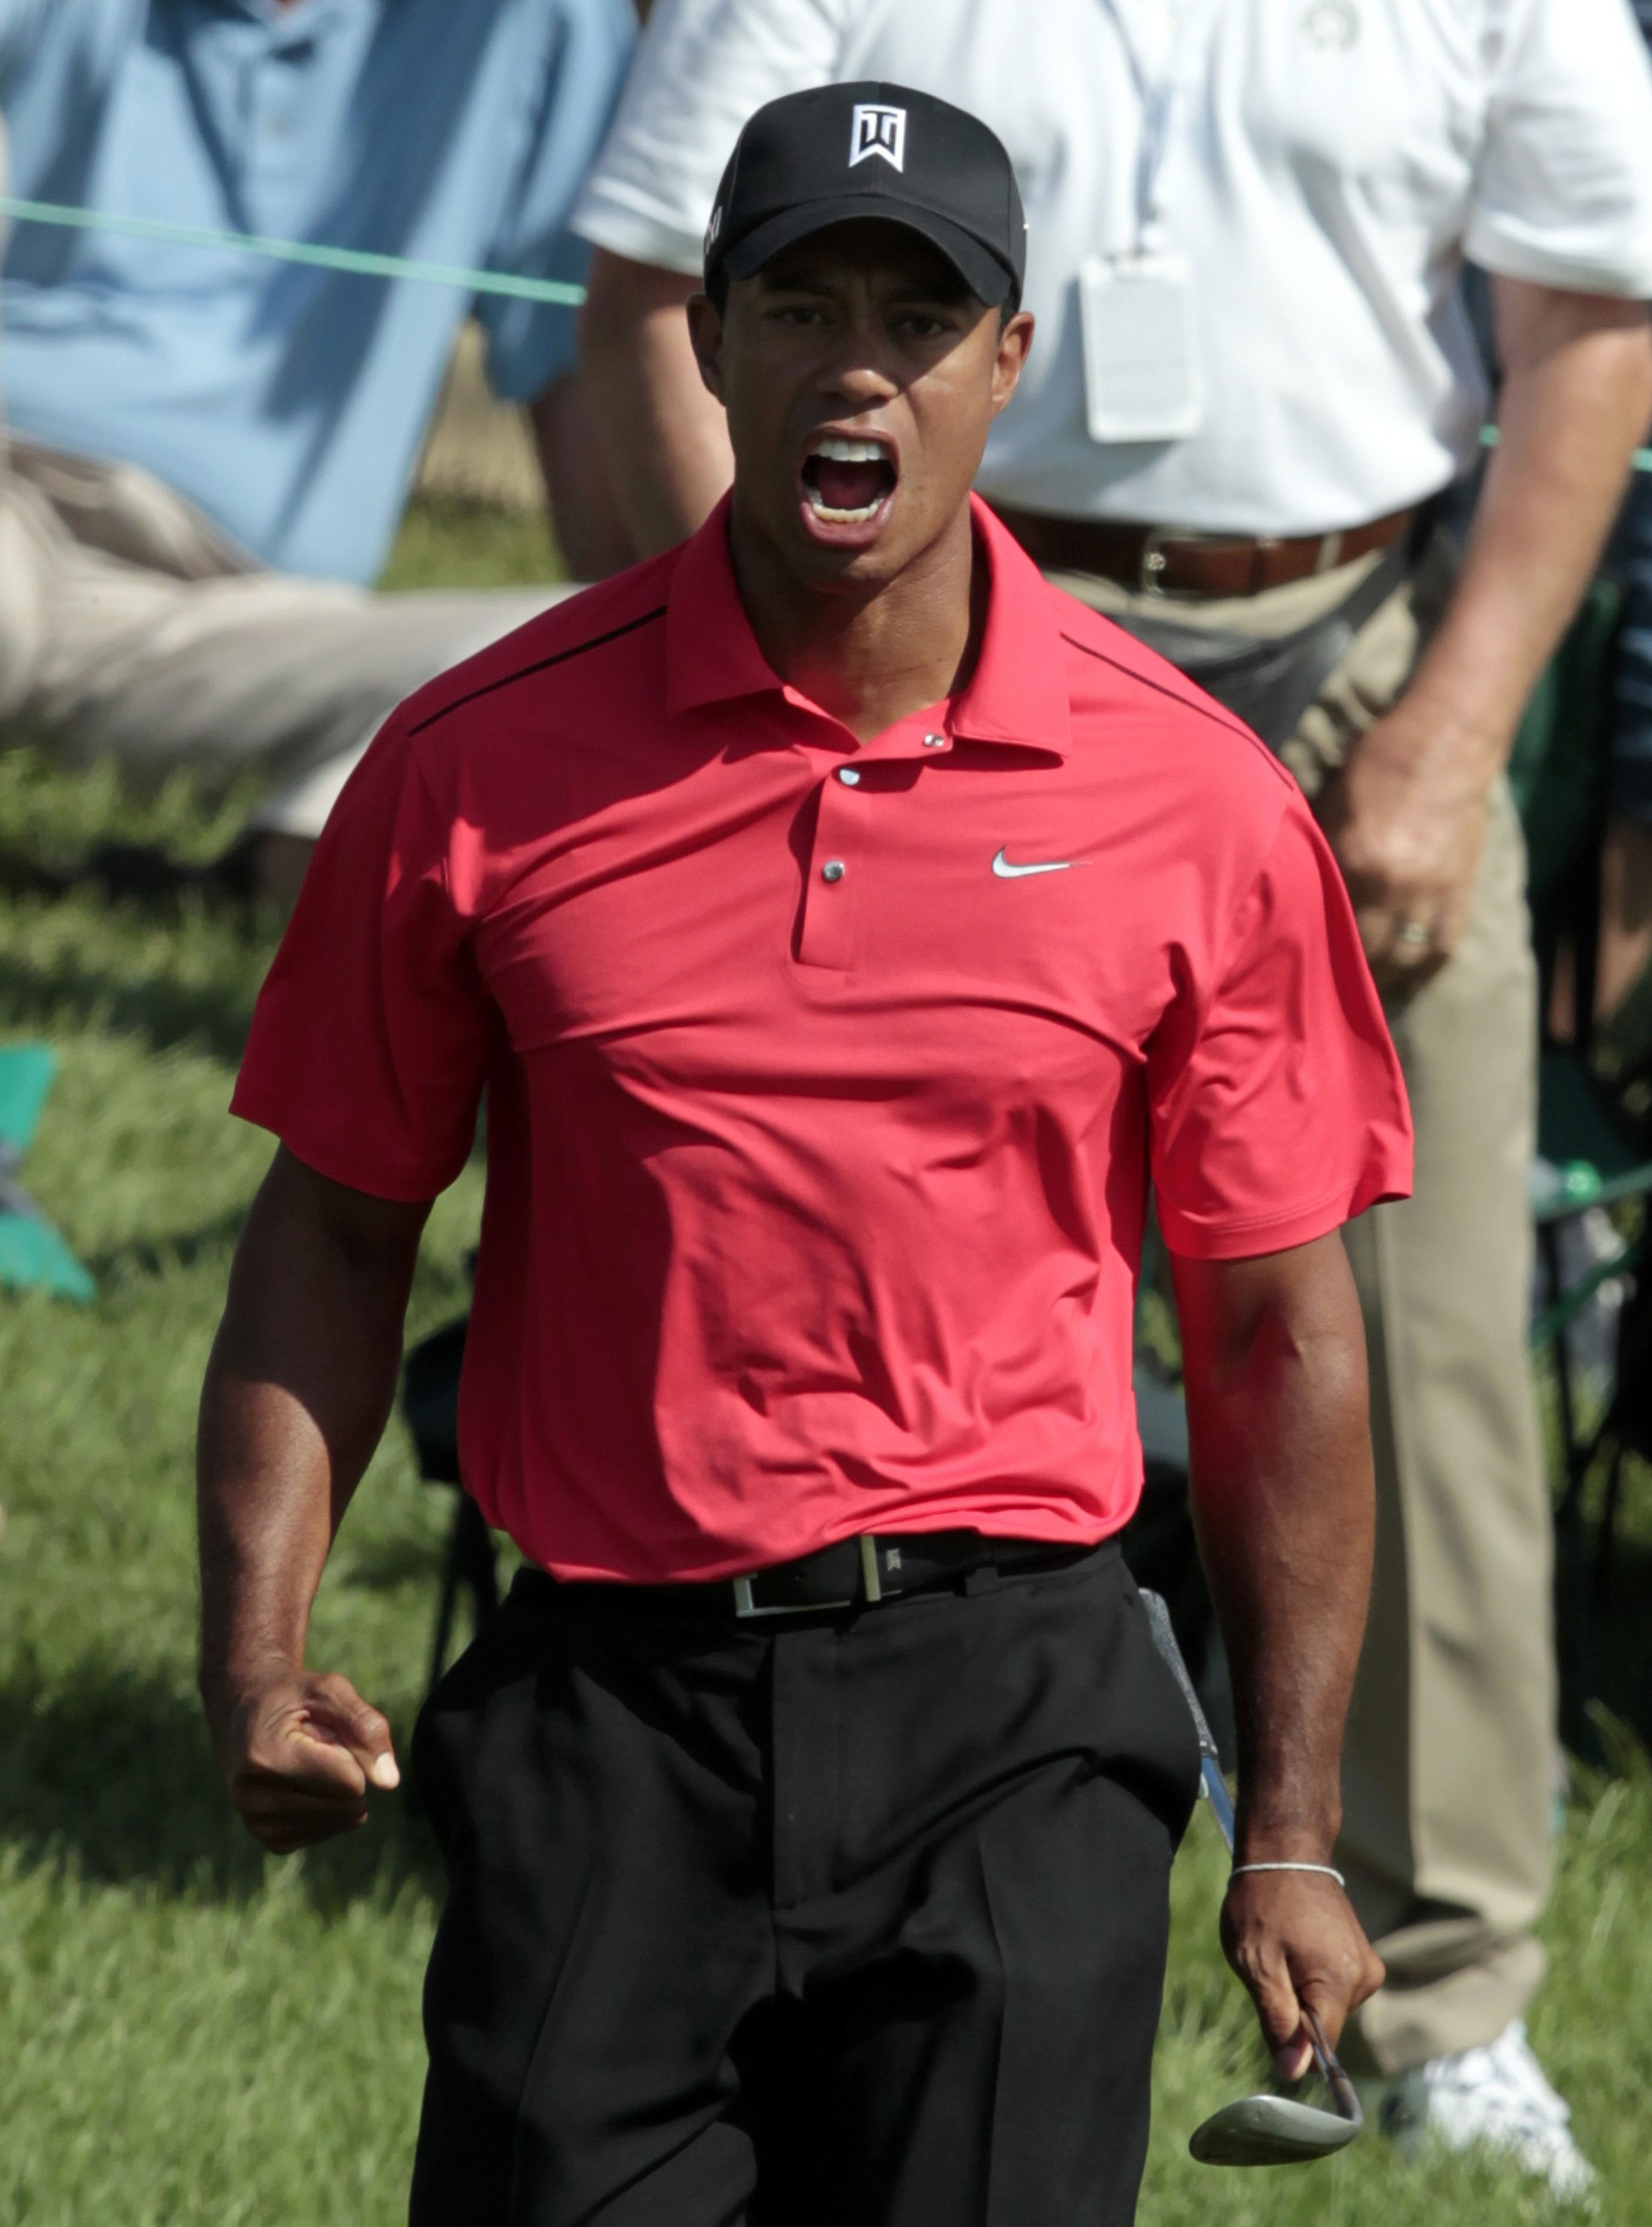 Tiger Woods roared with gusto after chipping in for a birdie on 16. (TPX)